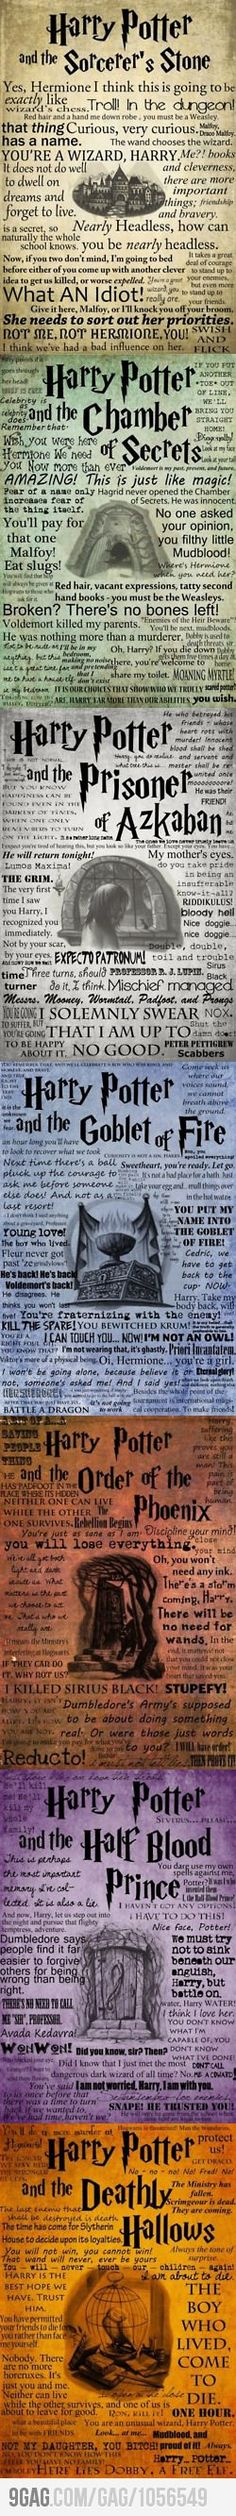 Harry Potter Quotes. Oh my goodness! This is incredible!